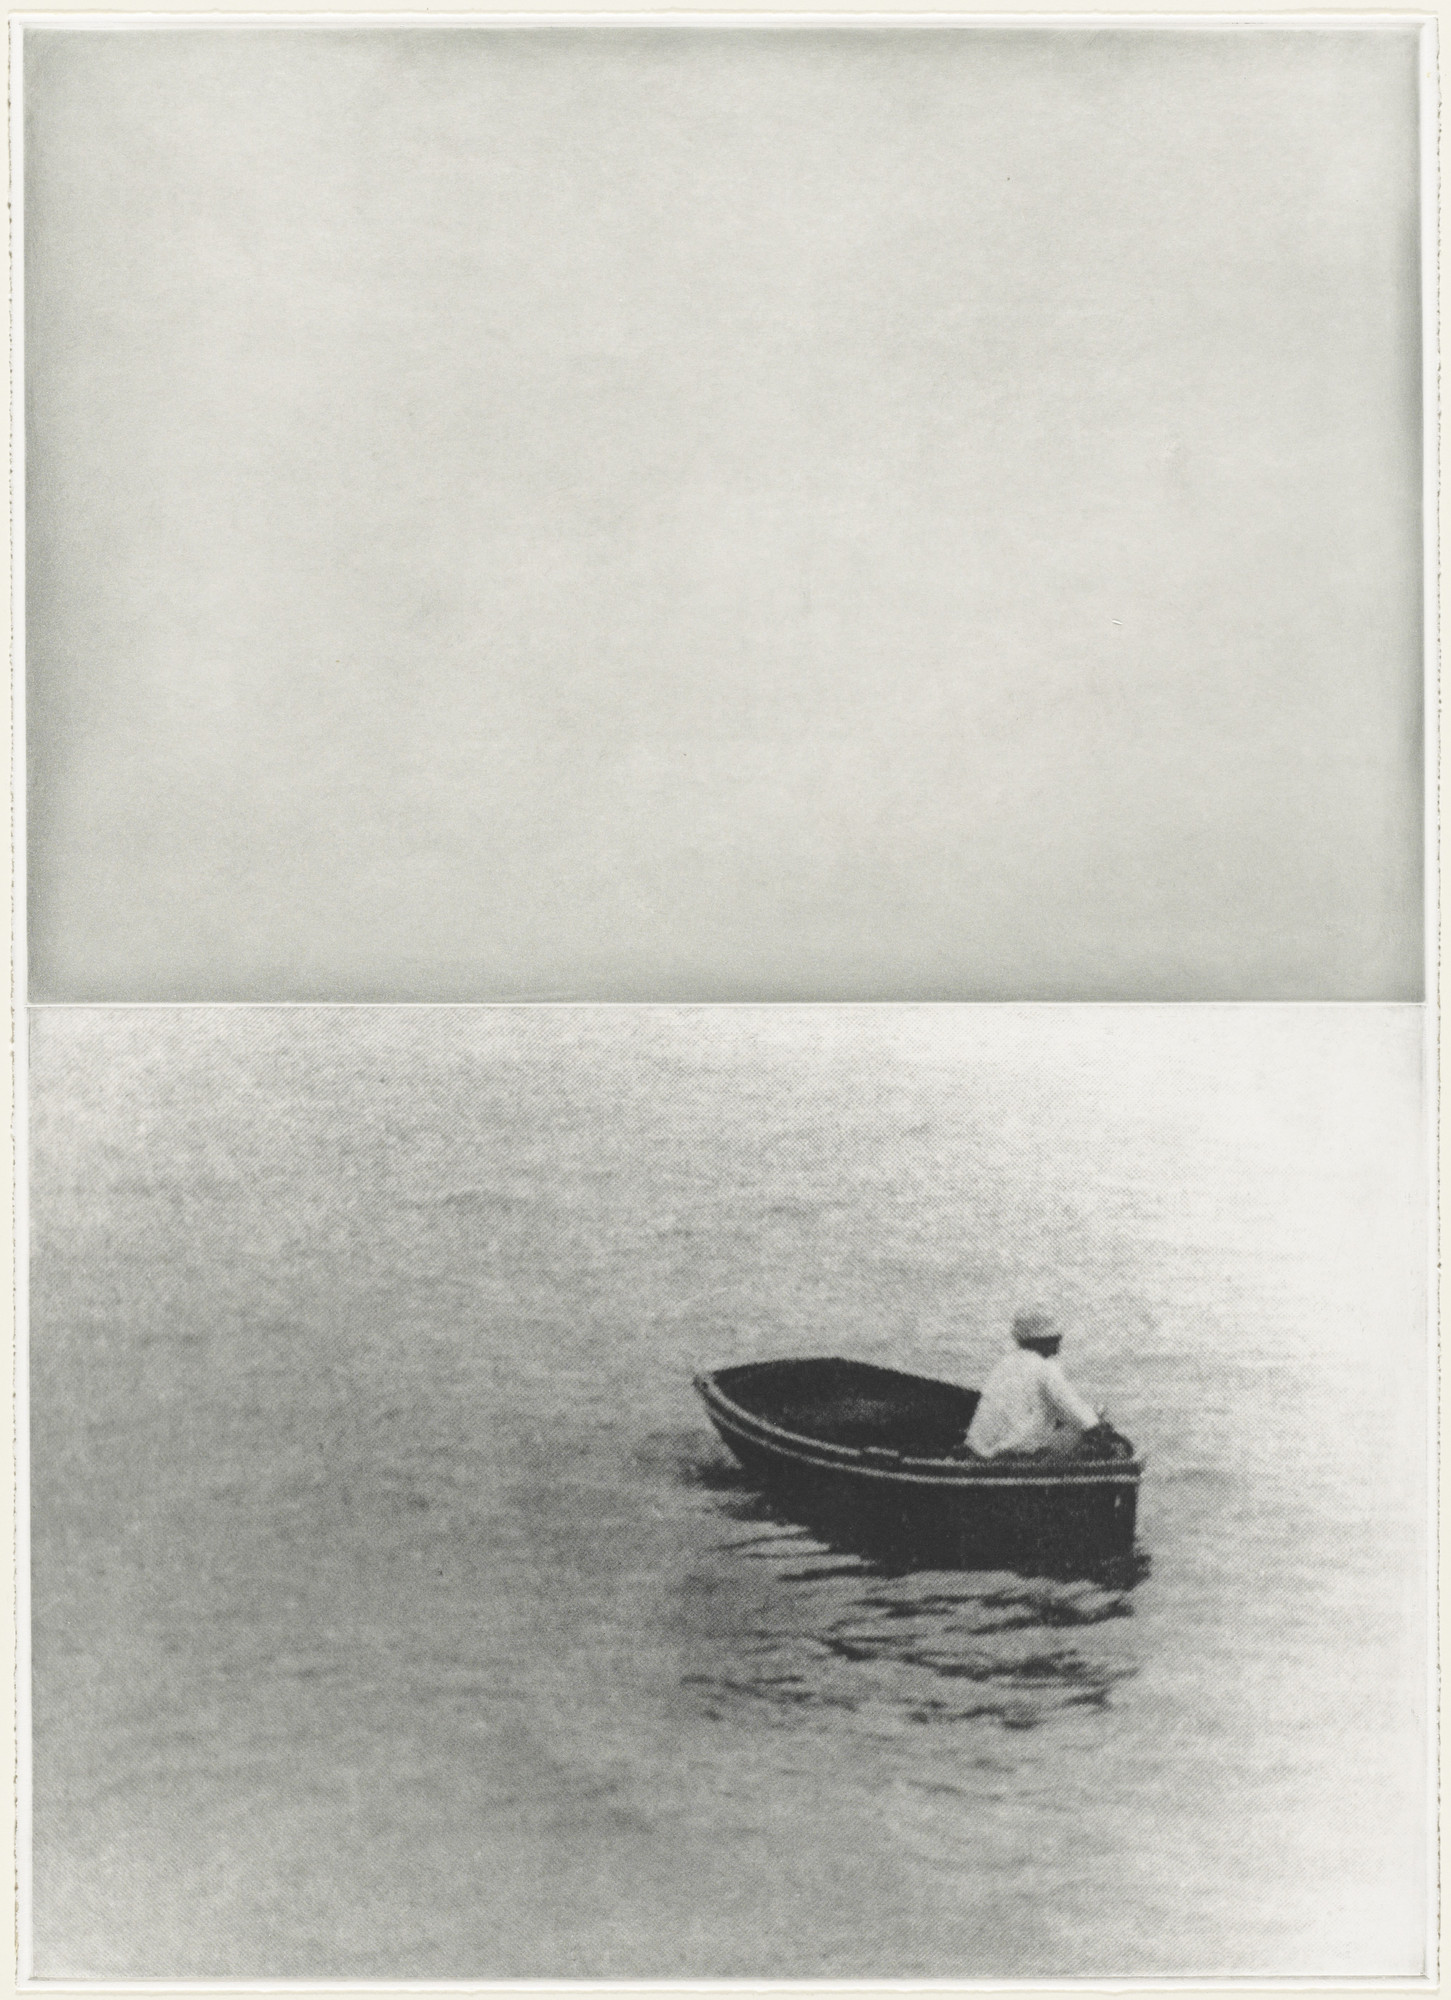 John Baldessari. Boat (With Figure Standing) from the portfolio Hegel's Cellar. (1986)